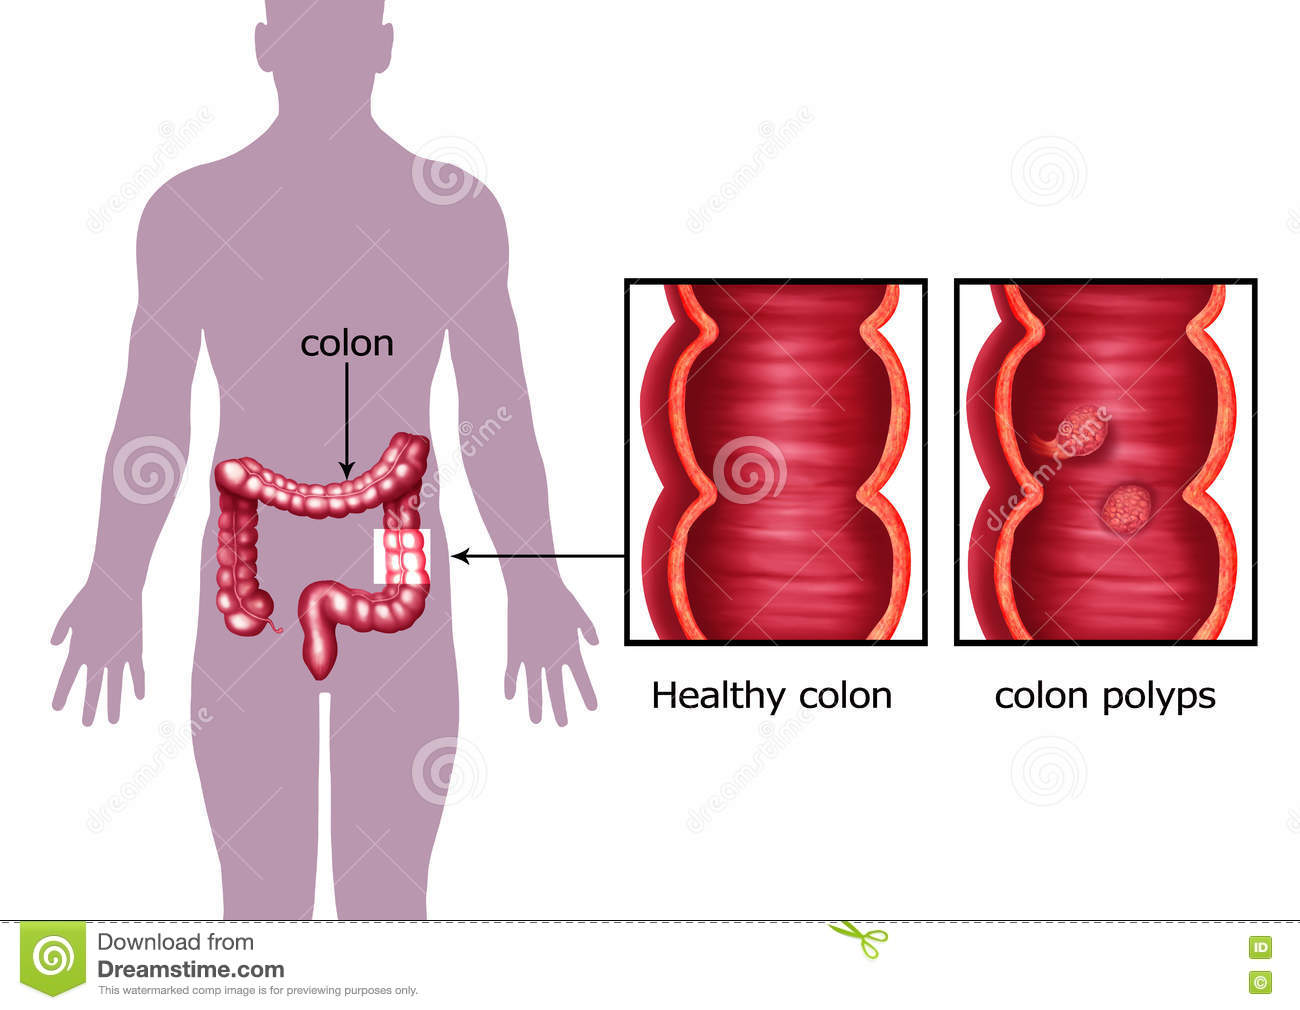 hight resolution of illustration of the colon cancer